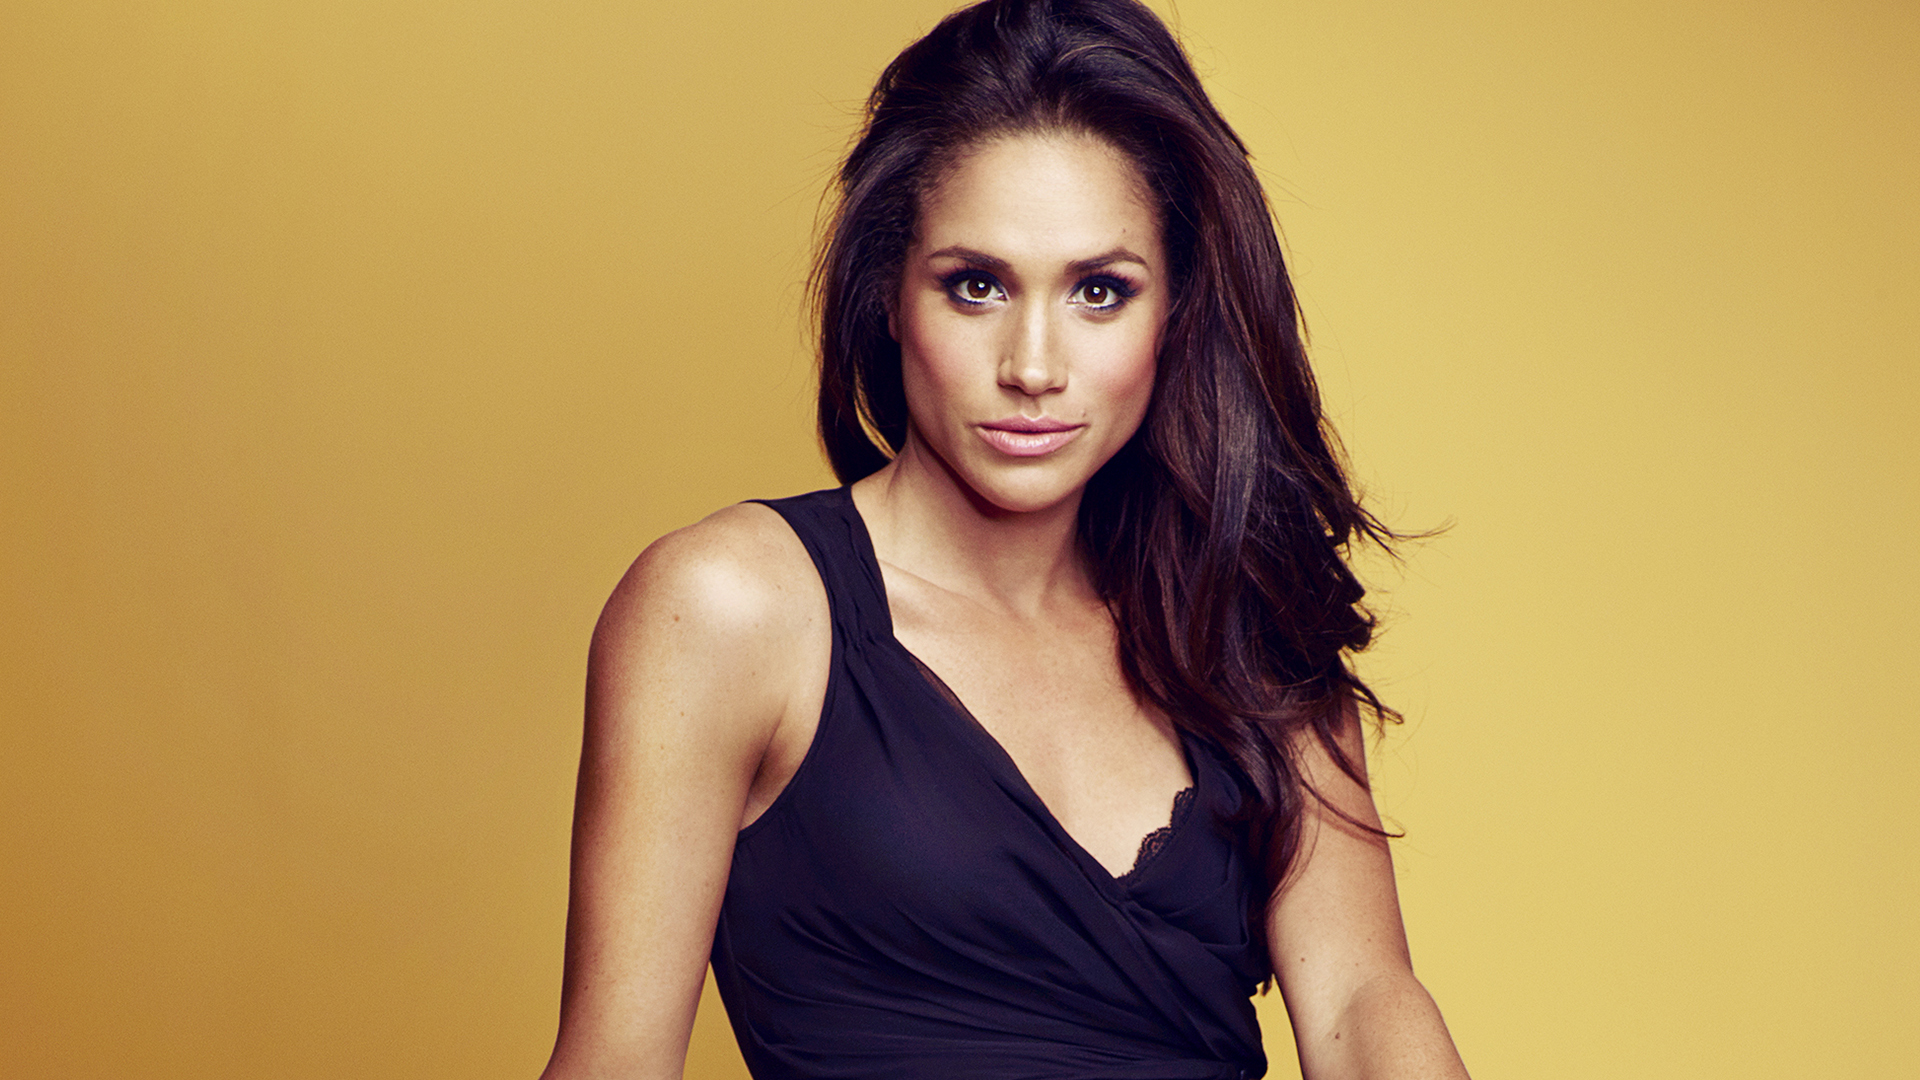 meghan markle - photo #32